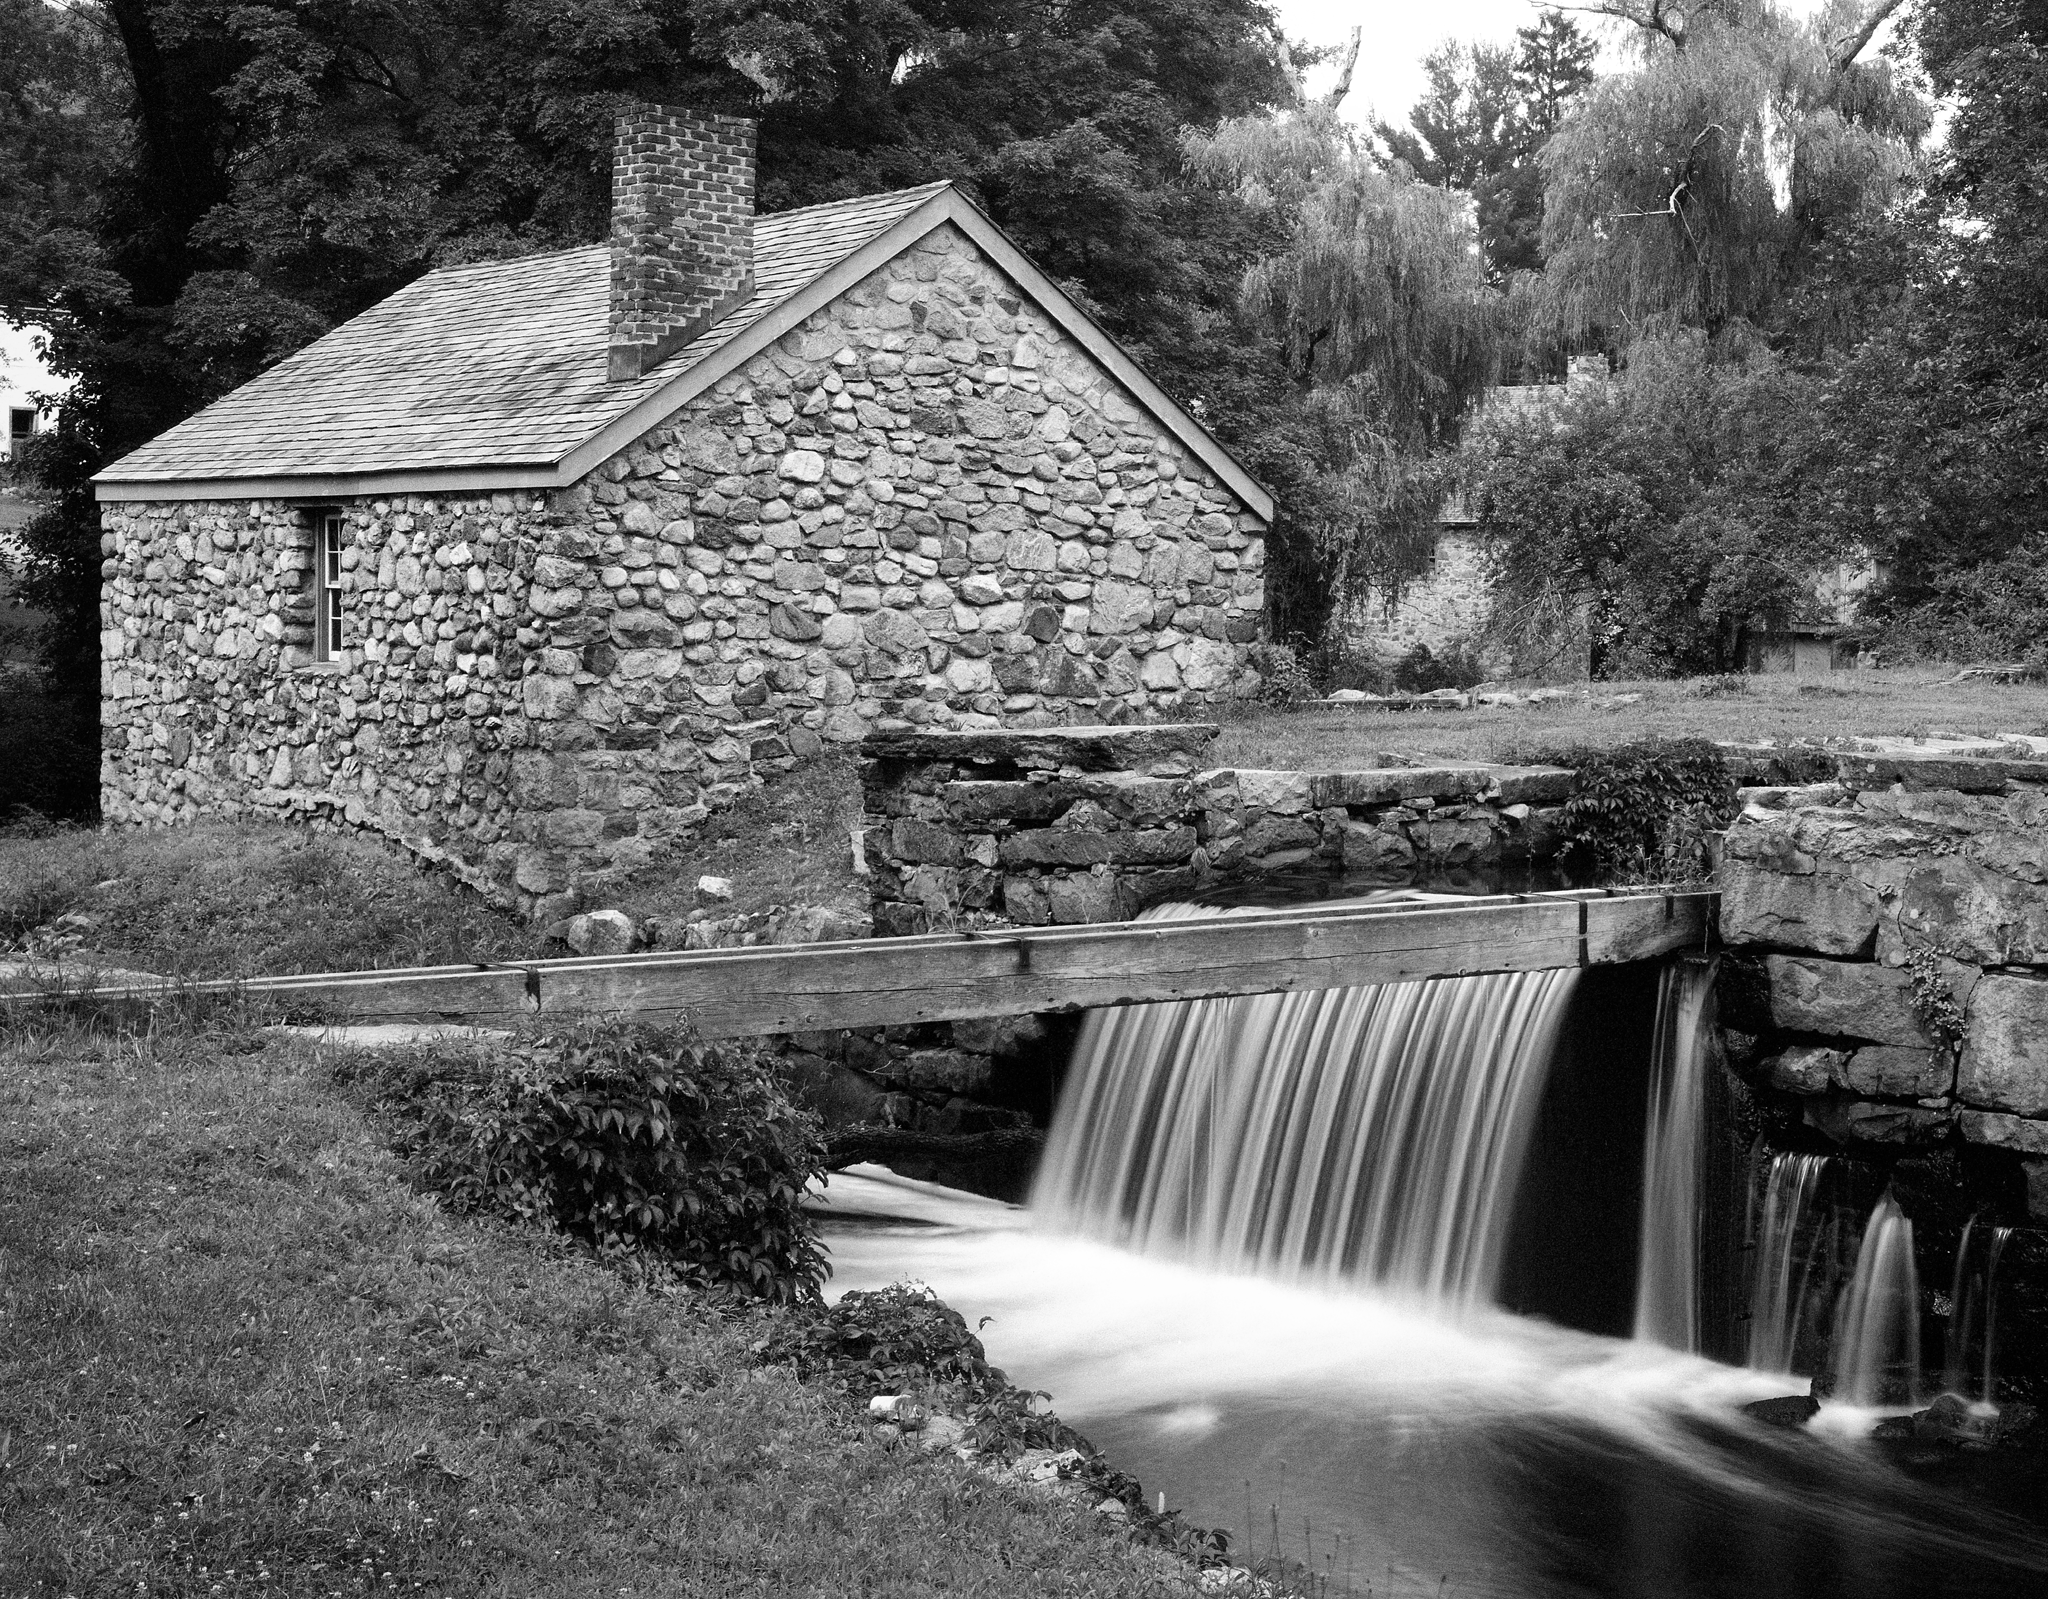 4x5_for_365_project_0210_Waterloo_Village_Dam.png